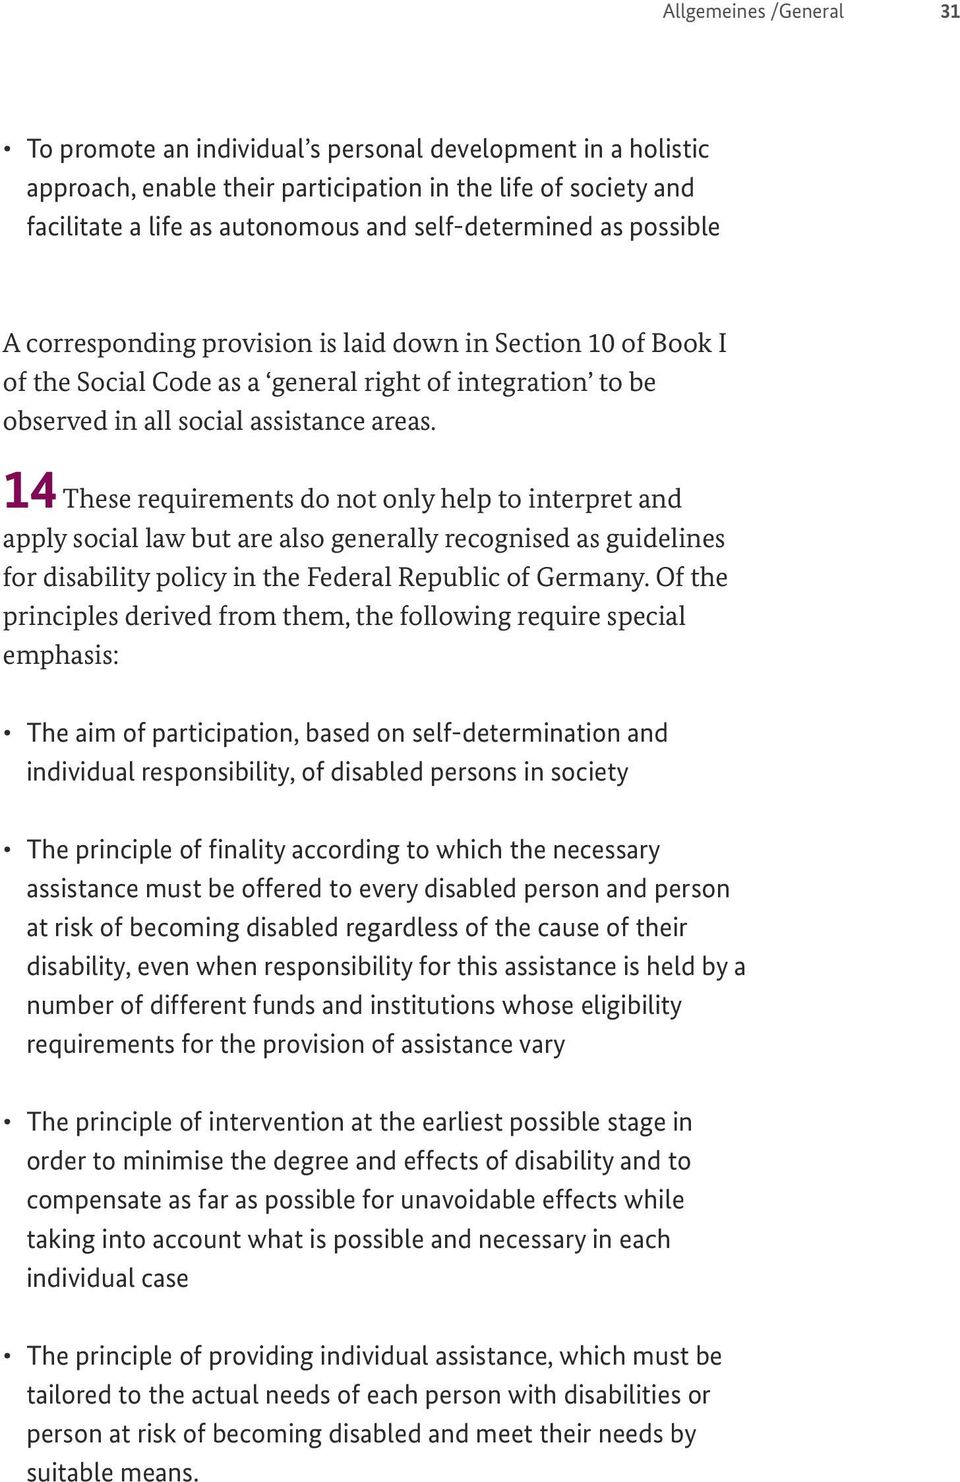 14 These requirements do not only help to interpret and apply social law but are also generally recognised as guidelines for disability policy in the Federal Republic of Germany.